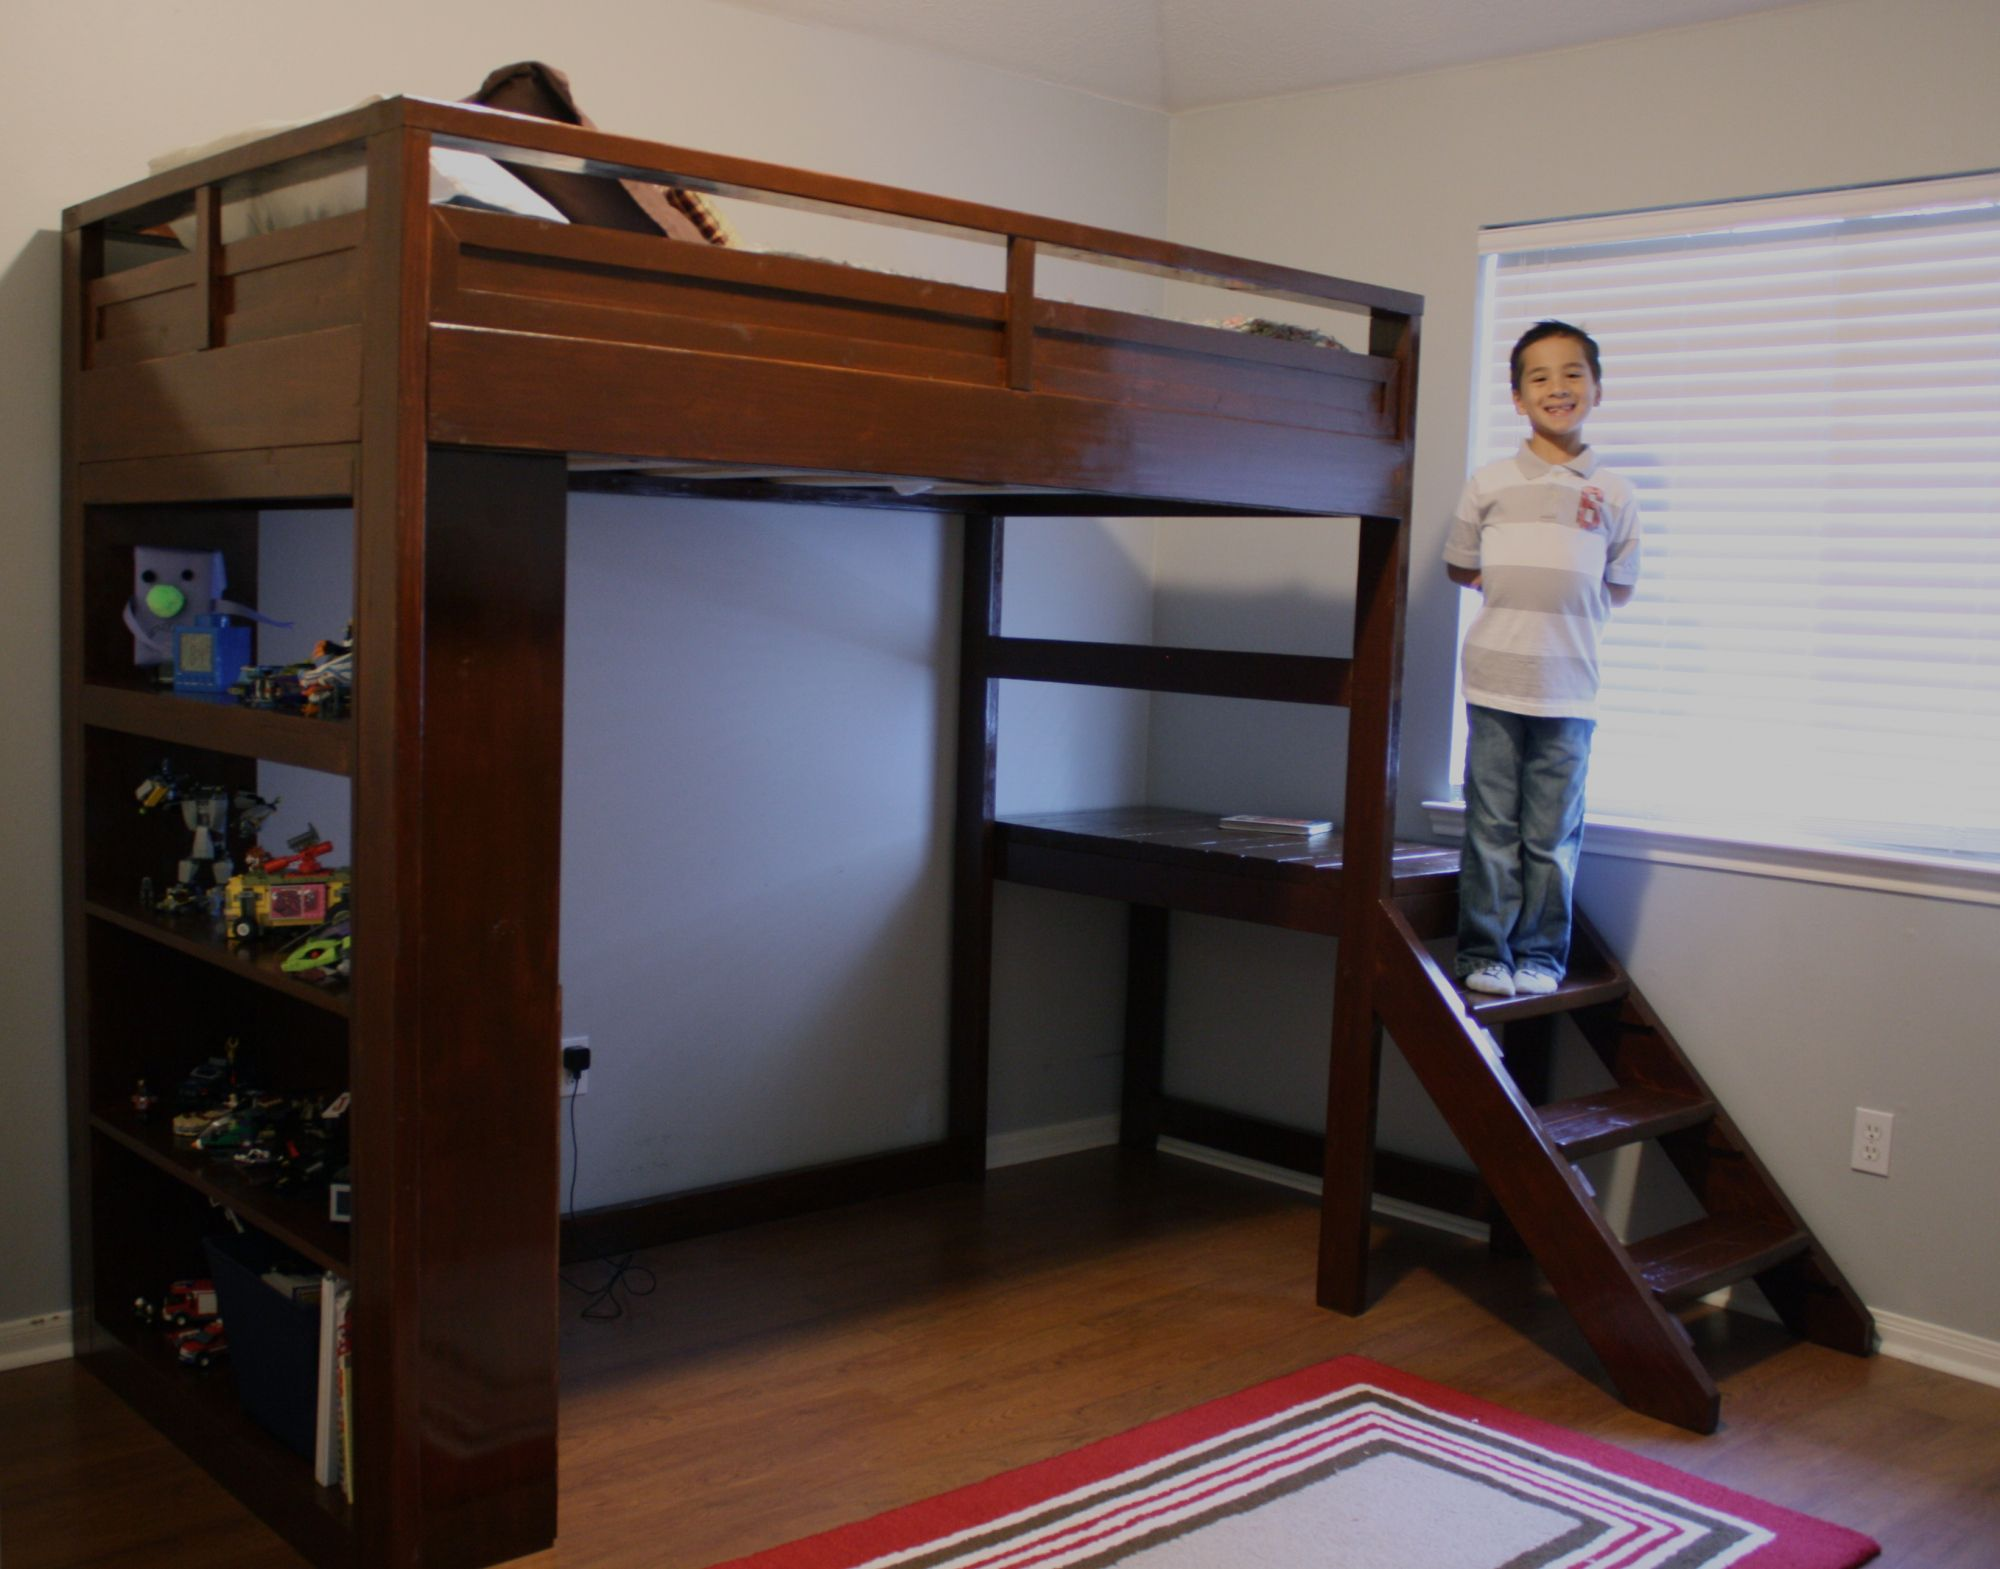 Bunk bed loft ideas  Loft Bed with Stairs and Desk Plans  Ideas to Decorate Desk Check